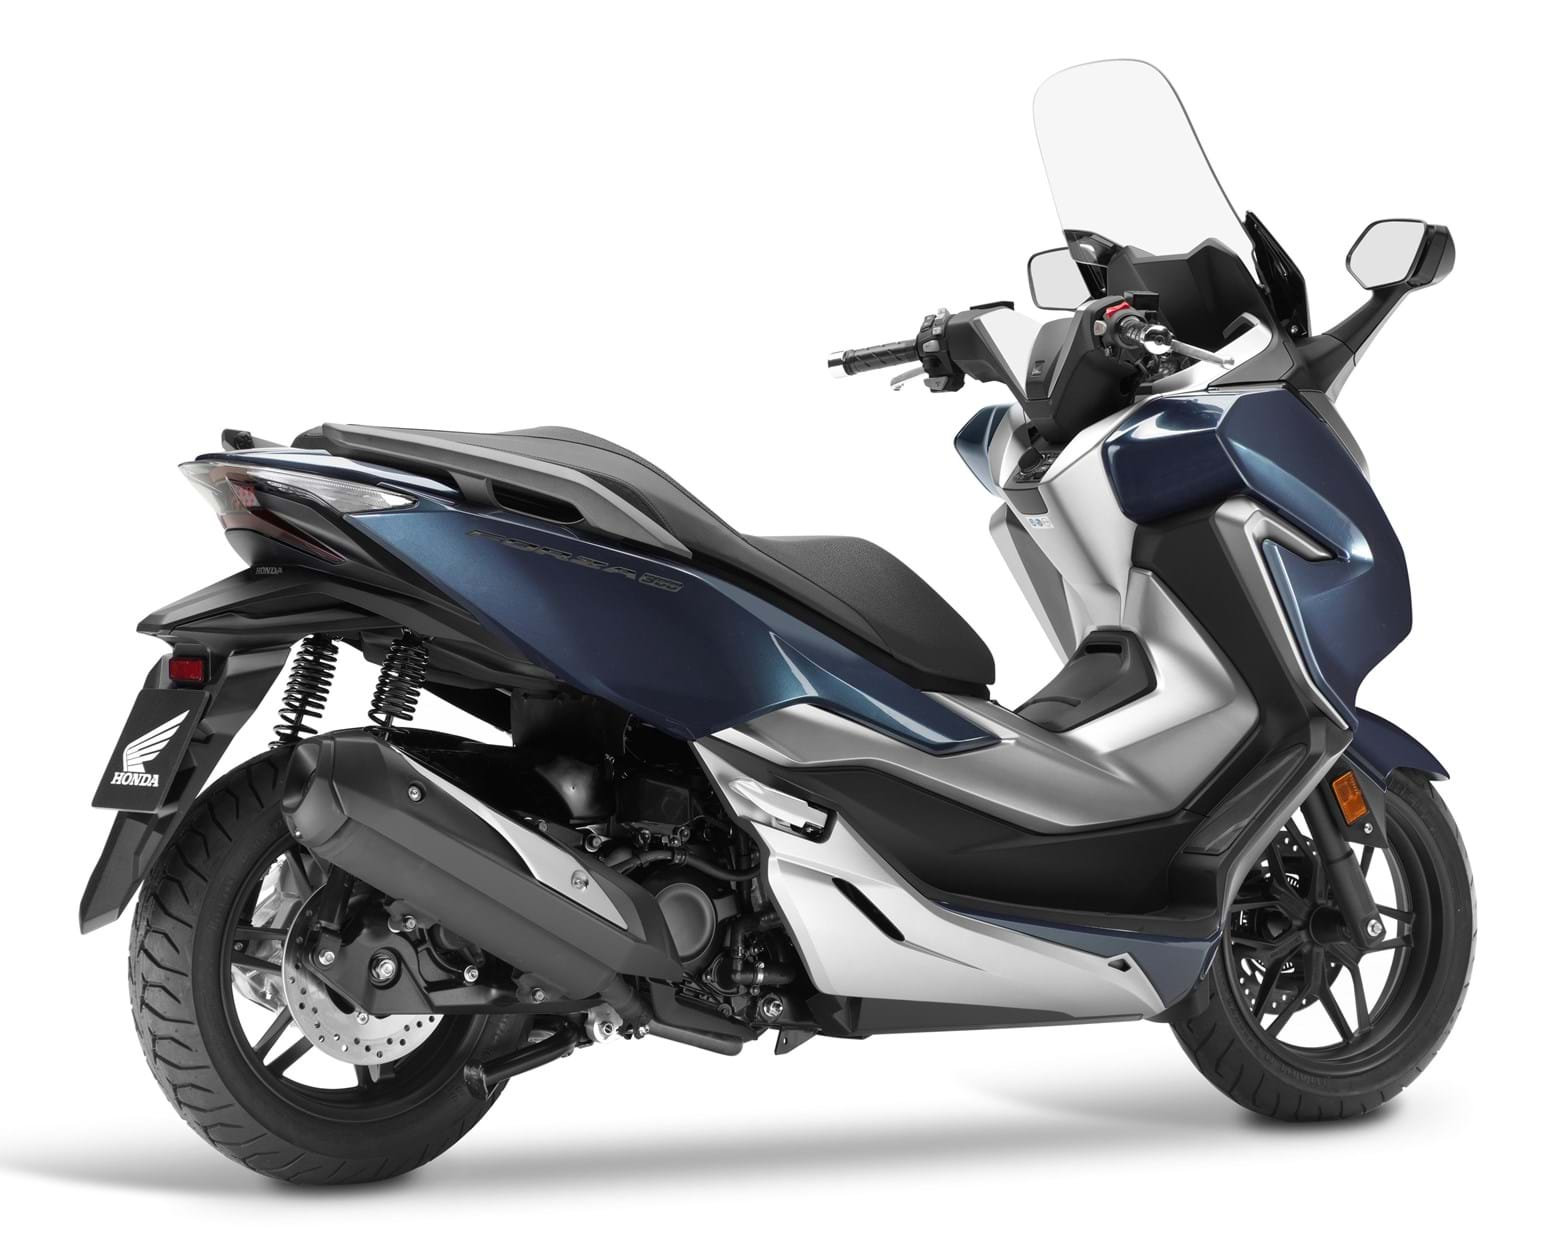 For Sale Honda Forza 300 The Bike Market New 300cc Bikes In India Price Guide Similar Parts